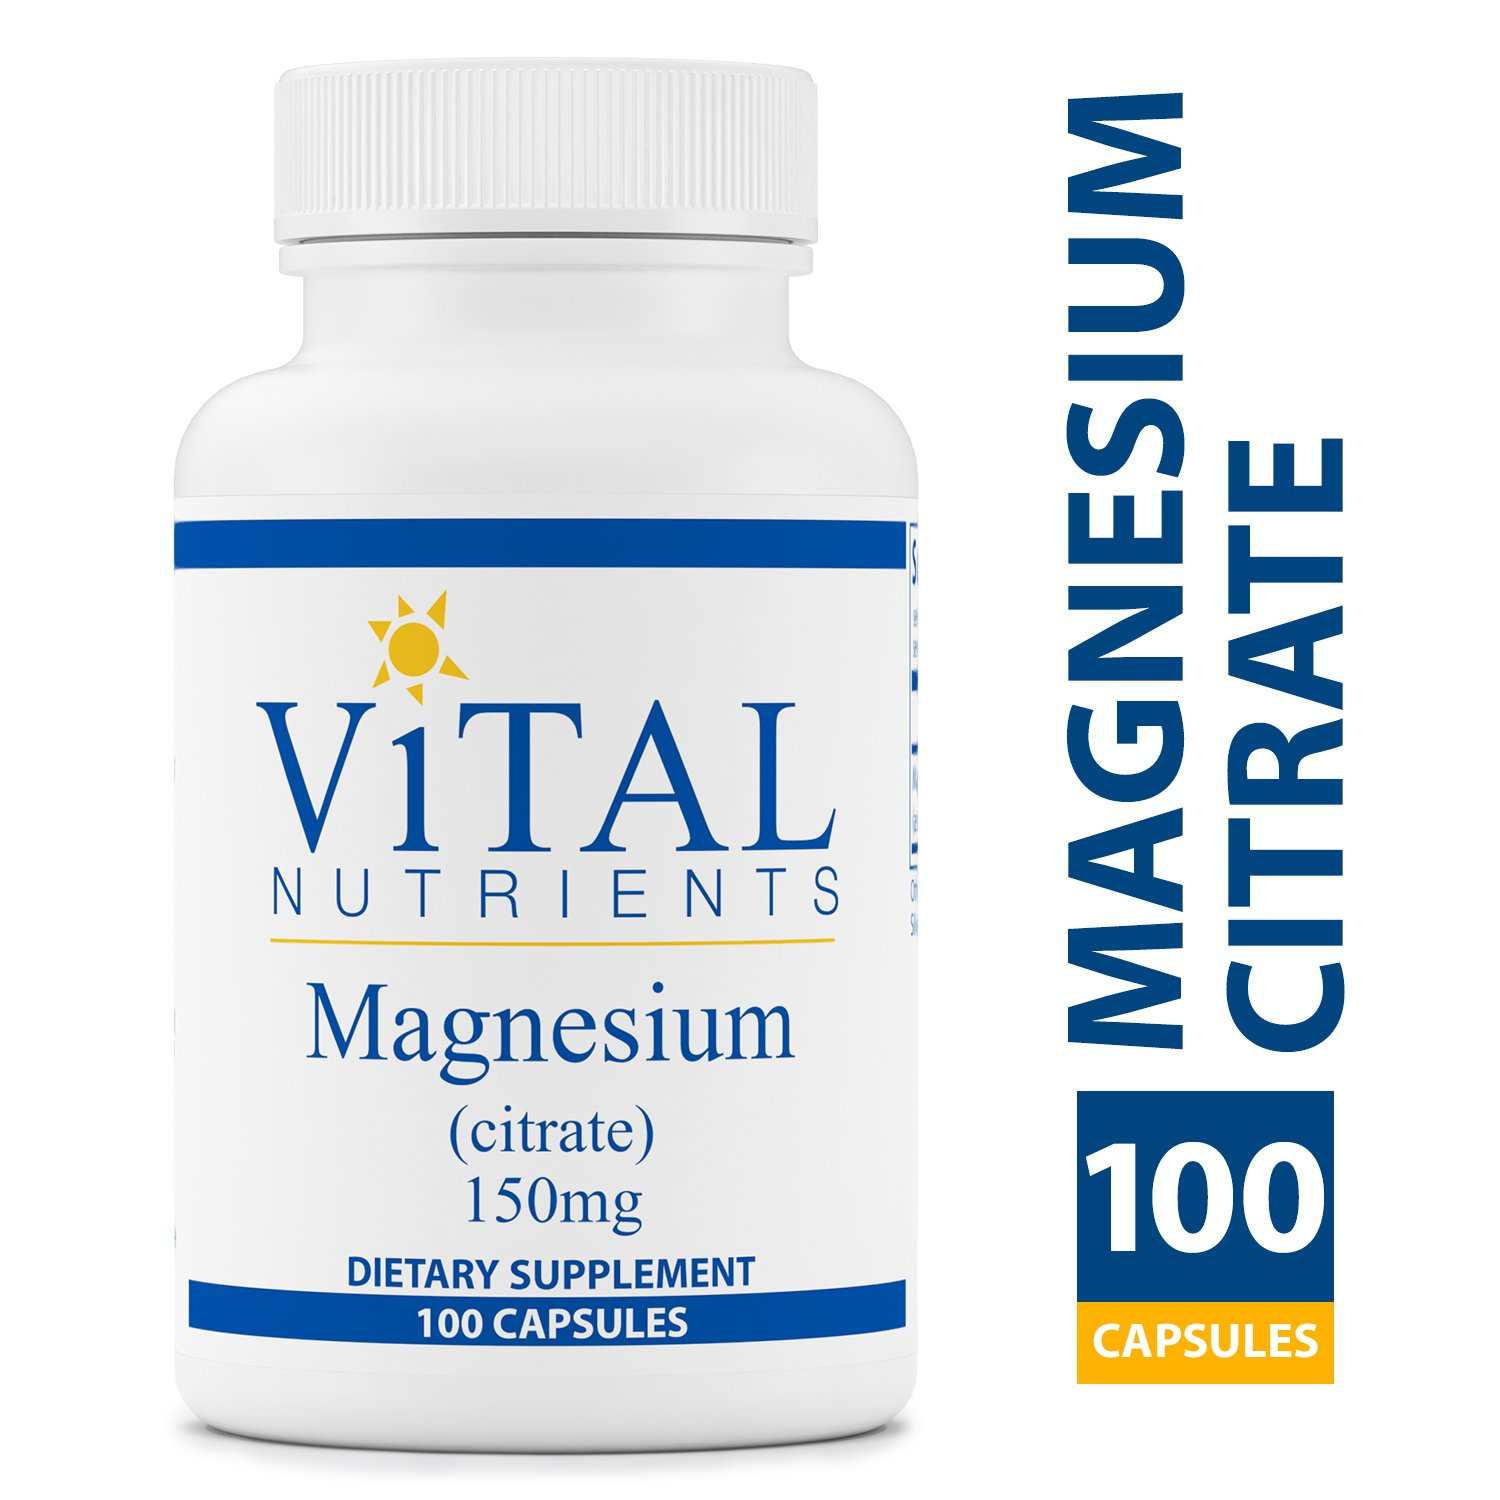 Vital Nutrients - Magnesium Citrate 150 mg - Magnesium for Enhanced Absorption - Gluten Free - 100 Capsules